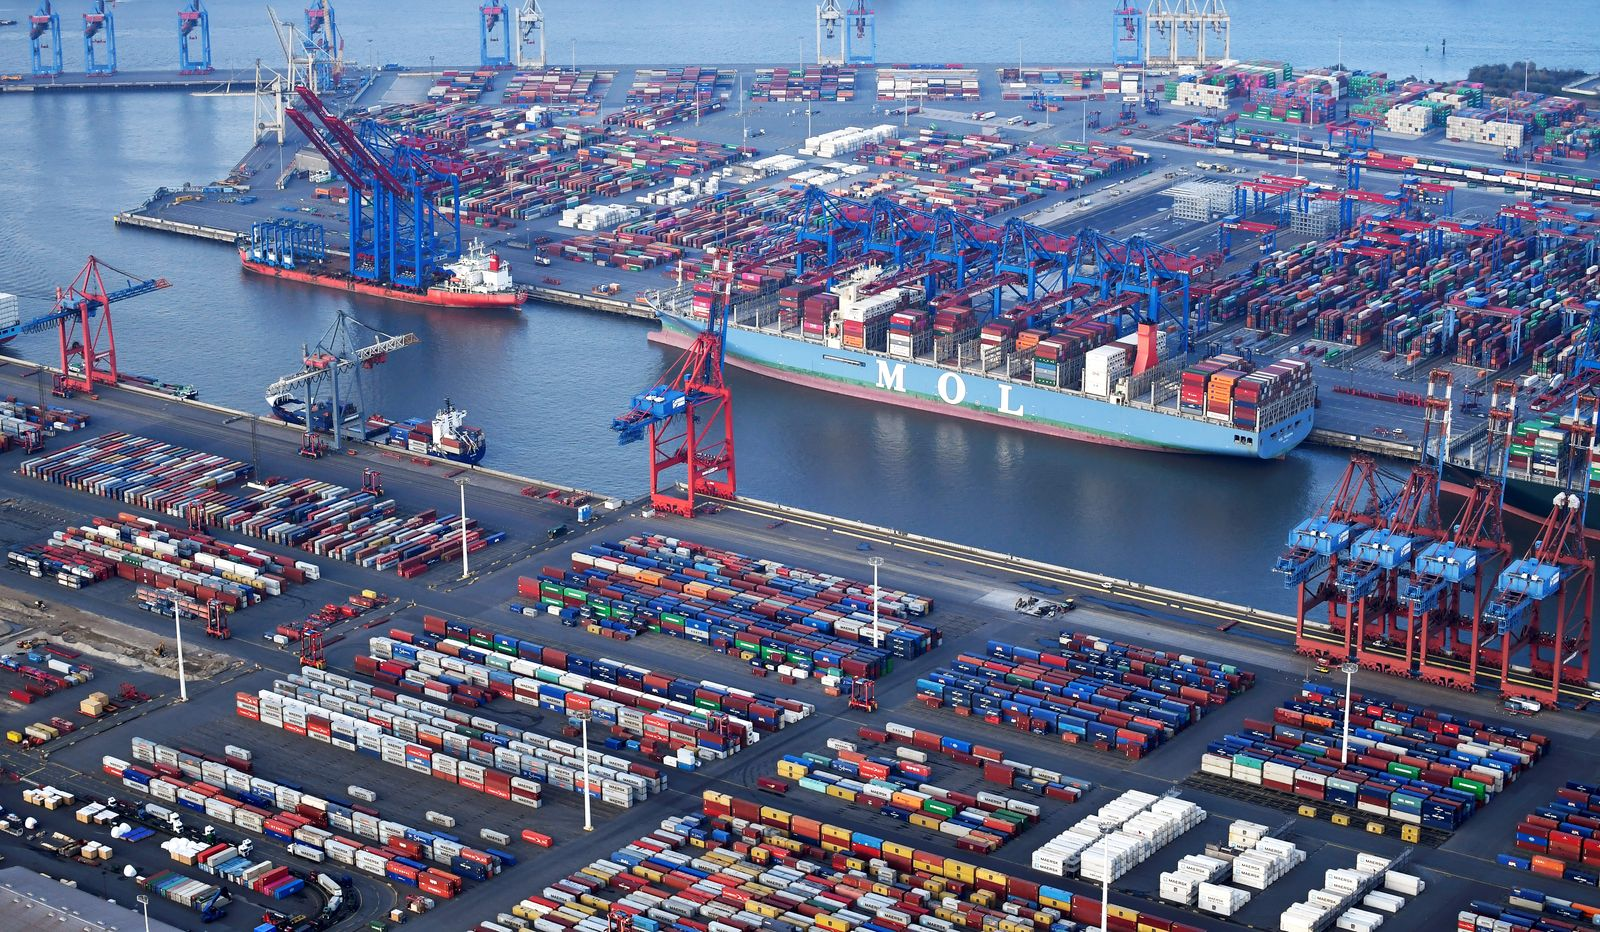 Aerial view of a container terminal in the port of Hamburg